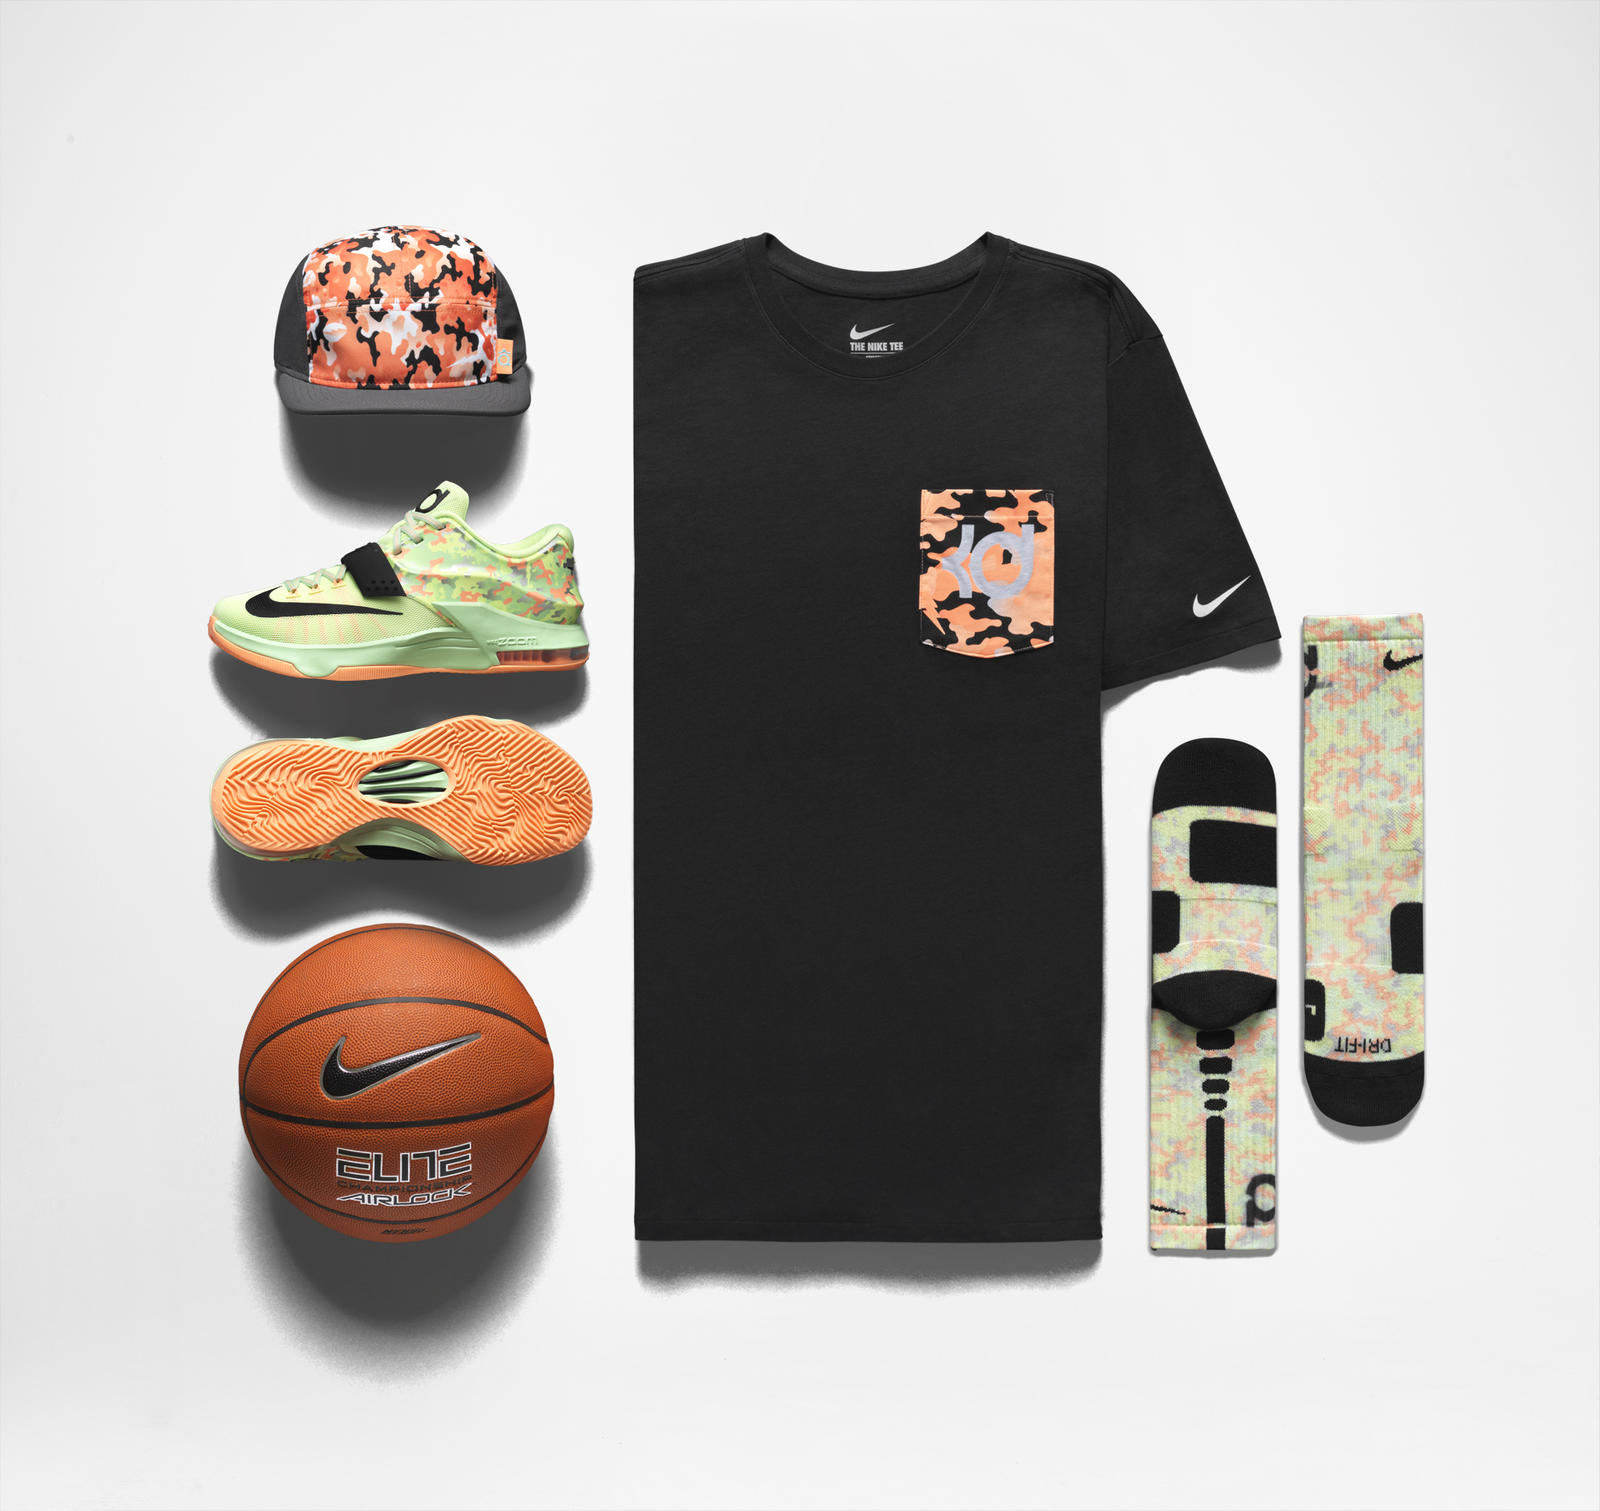 new product b1299 473a5 SU15-BBALL-SNEAKERPLUS-KD-EASTER 0210. KD7 Easter Collection ...